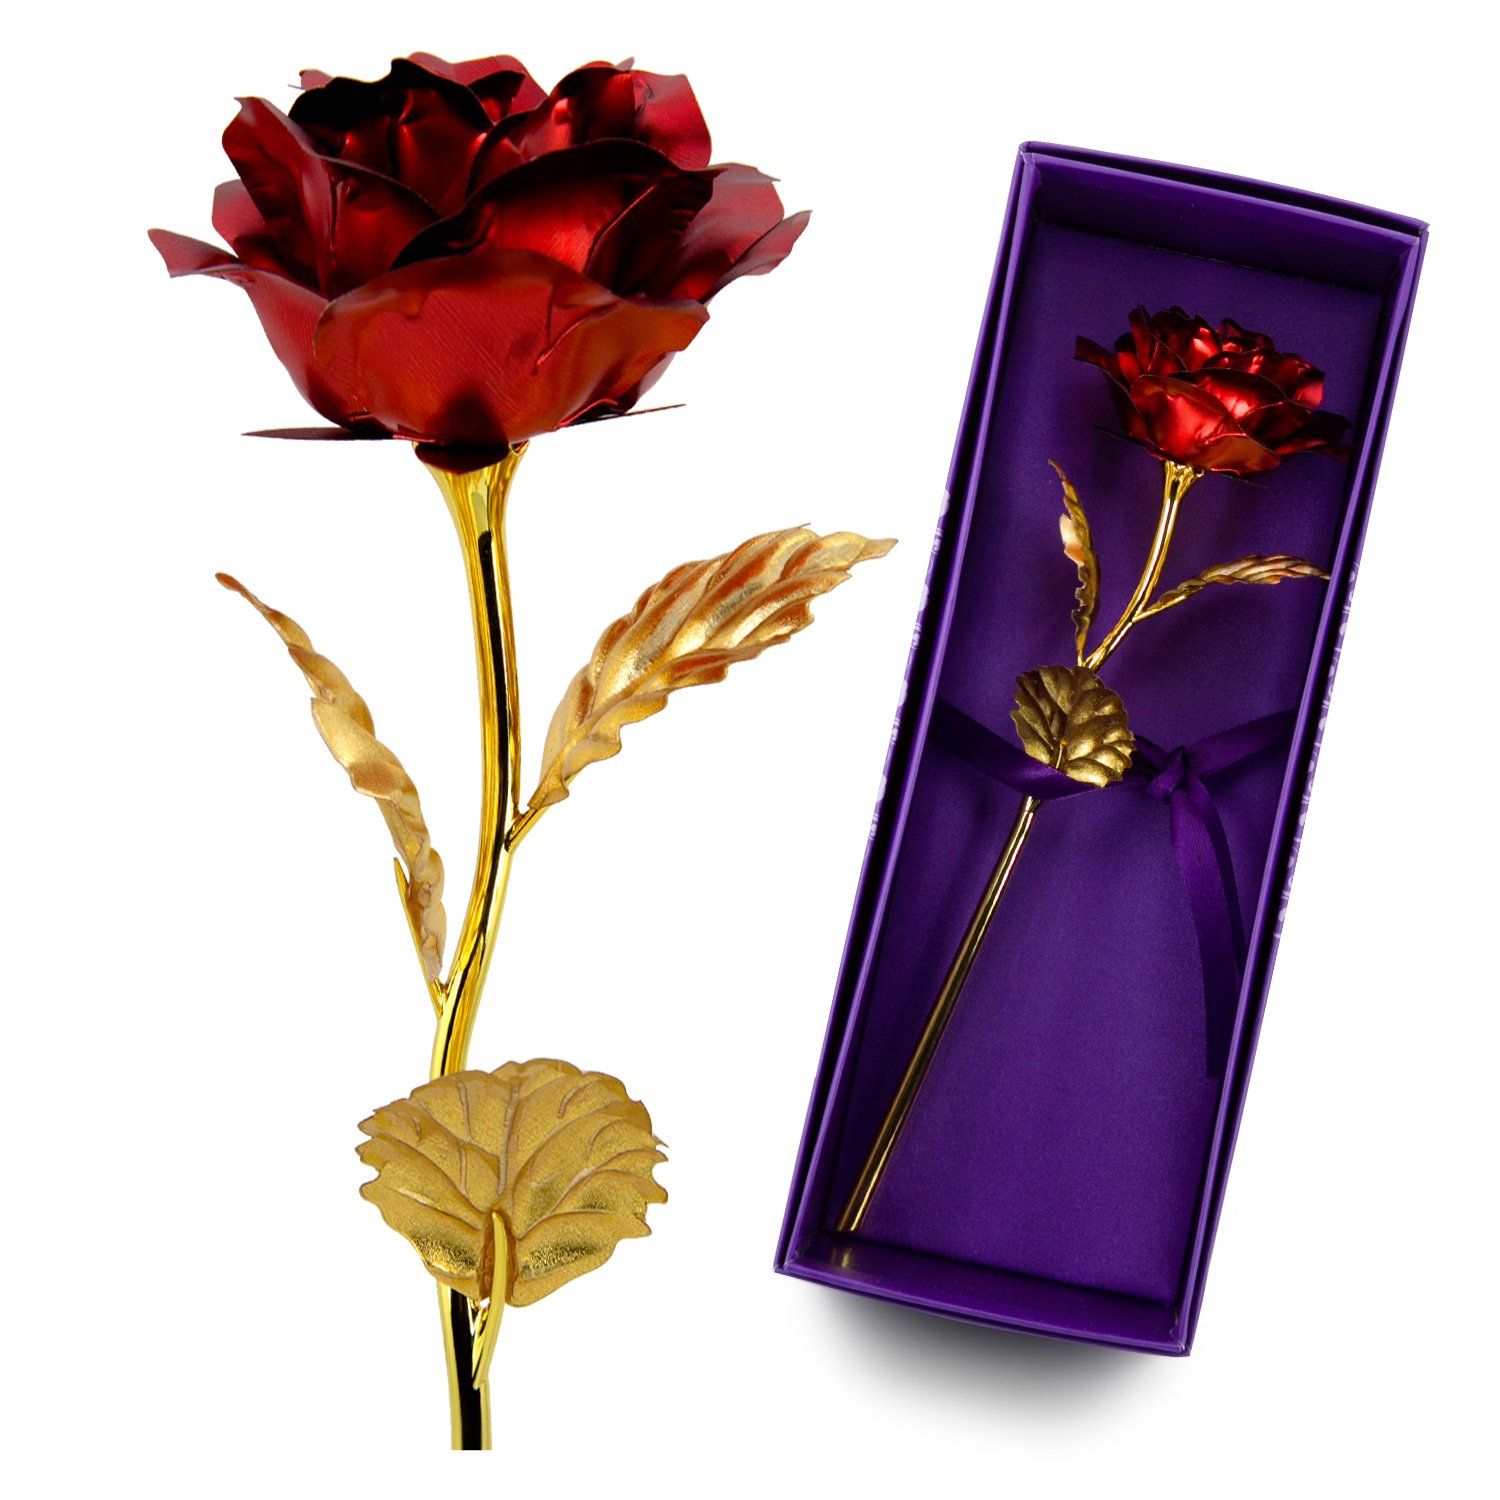 Unitestone gifts for women for whom you loved pretty red roses as unitestone gifts for women for whom you loved pretty red roses as gifts for her nice gifts for girls unique gifts for mum amazon kitchen home izmirmasajfo